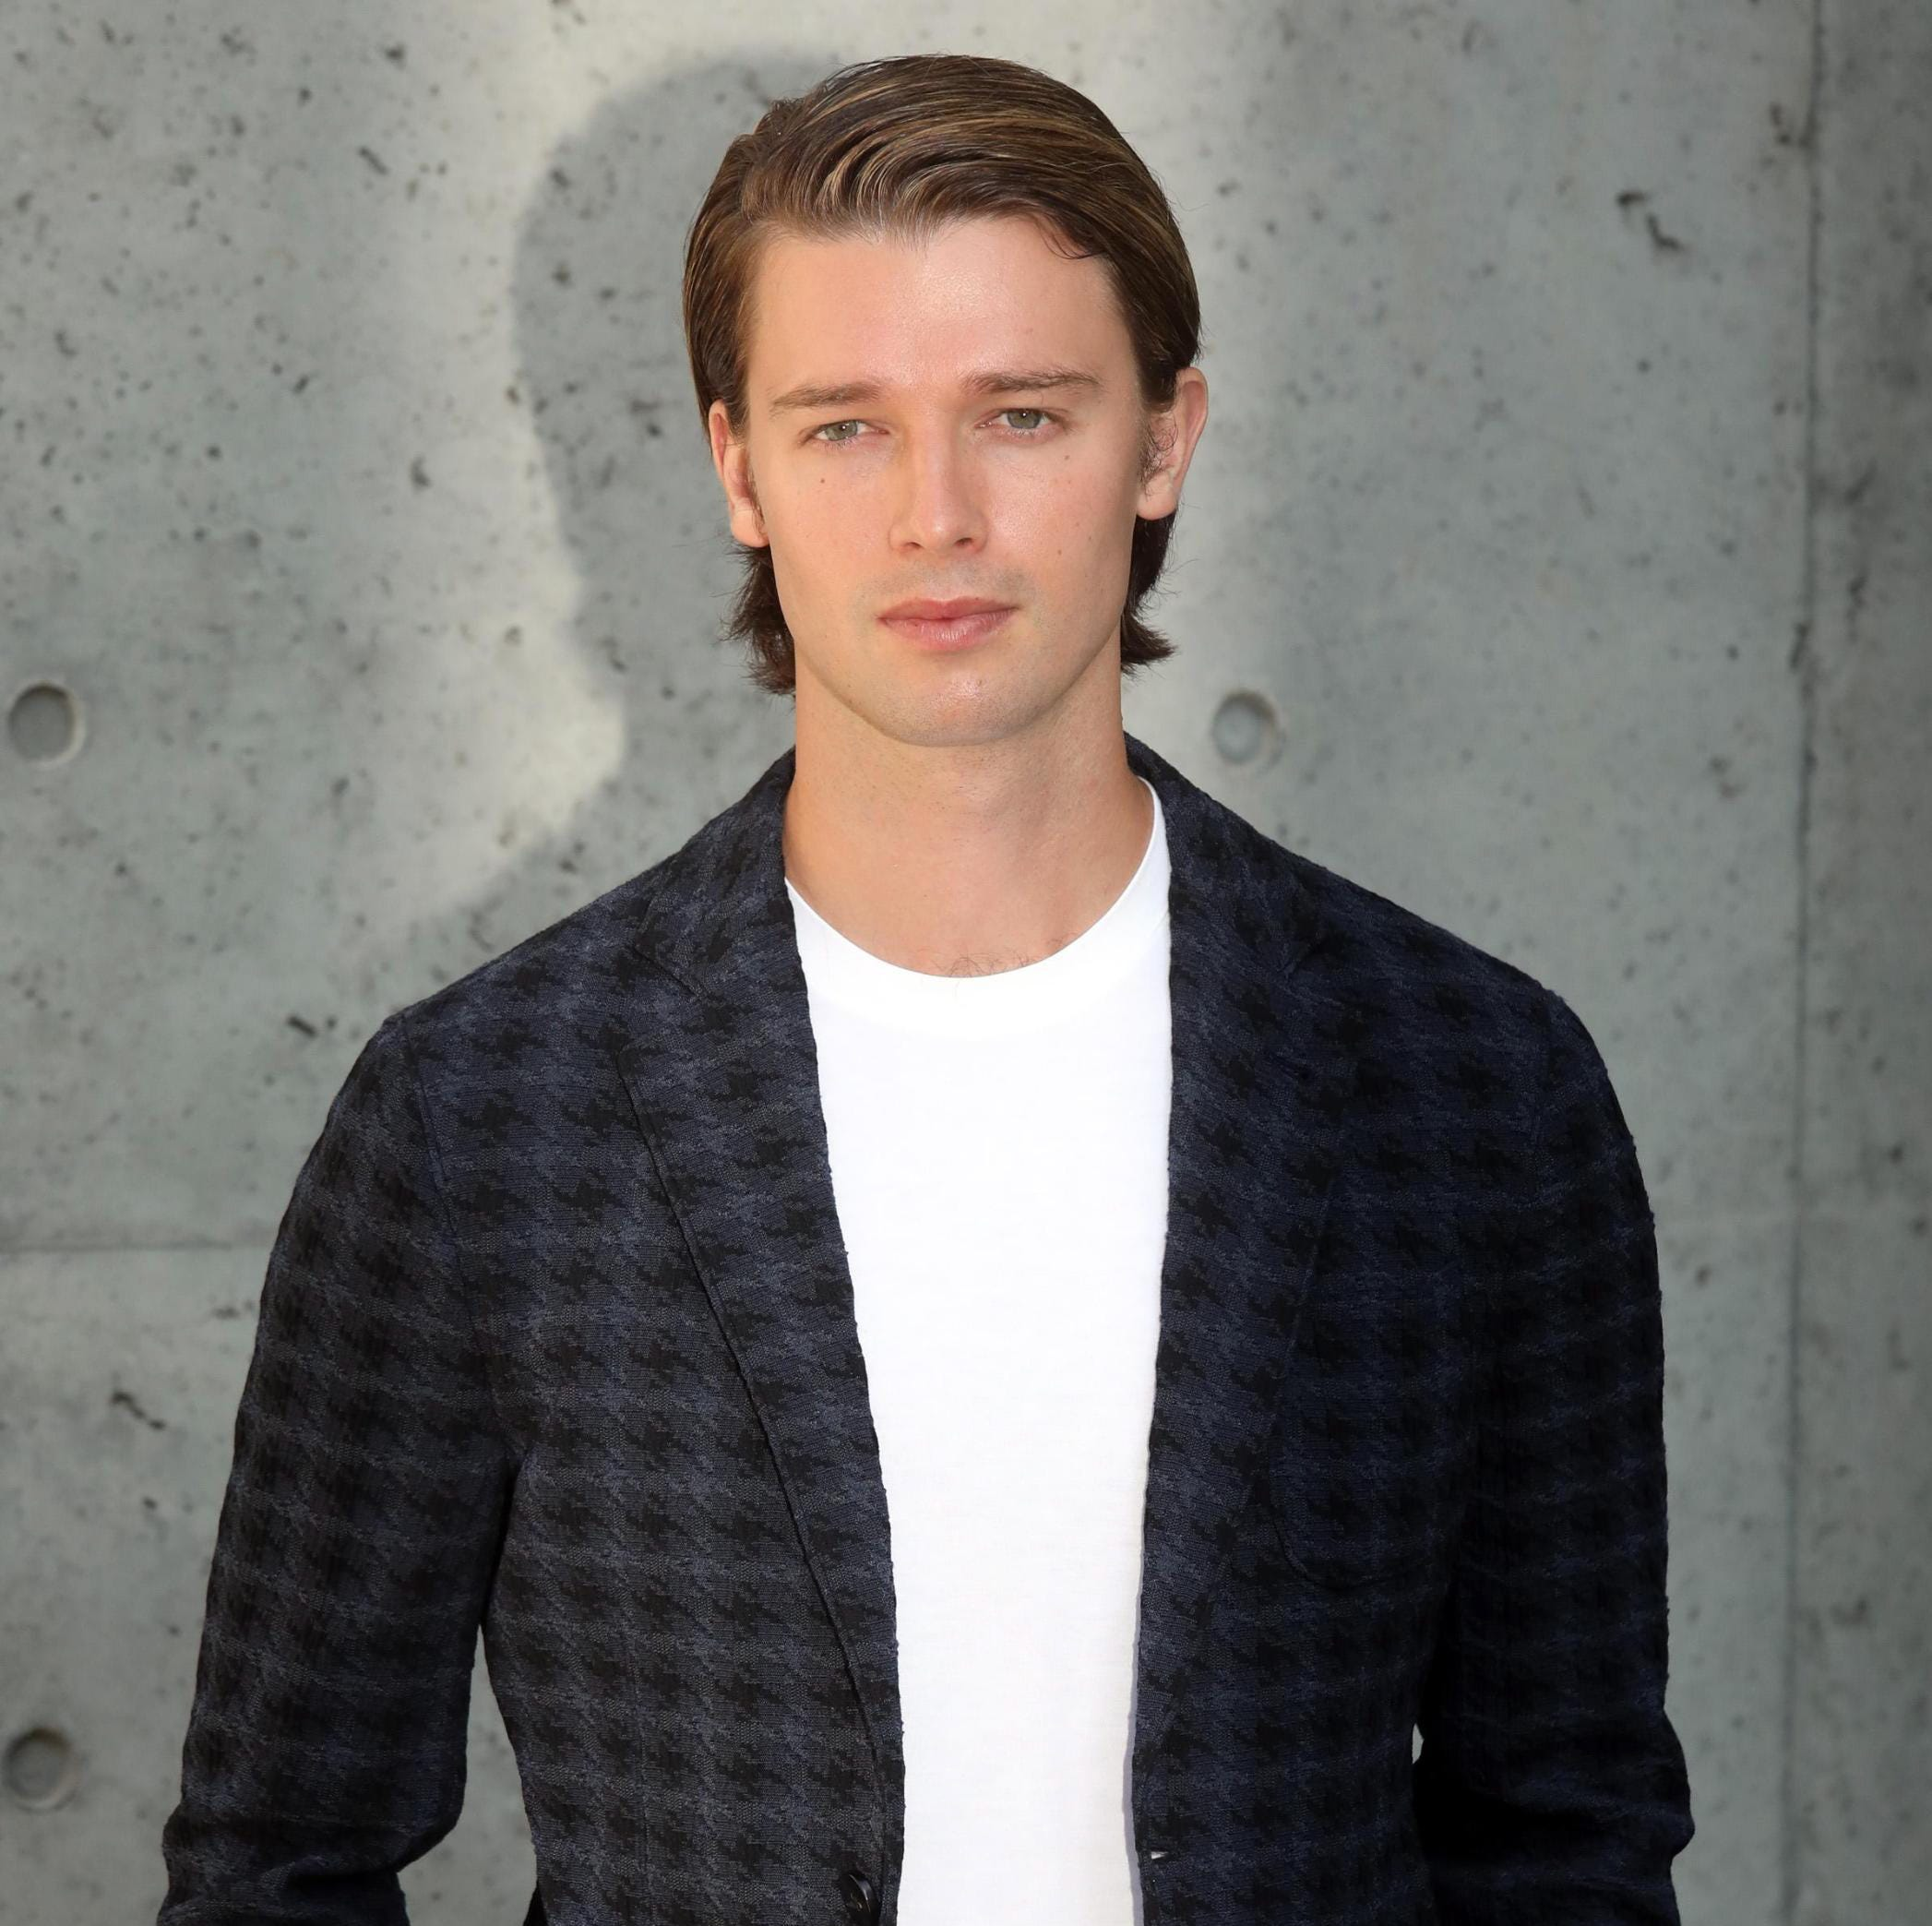 epa07041485 Patrick Schwarzenegger arrives for the Giorgio Armani women's 2019 Spring-Summer collection  during the Milan Fashion Week, in Milan, Italy, 23 September  2018. The Spring Summer 2019 Women's collections are presented at the Milano Moda Donna from 19  to 24 September.  EPA-EFE/MATTEO BAZZI